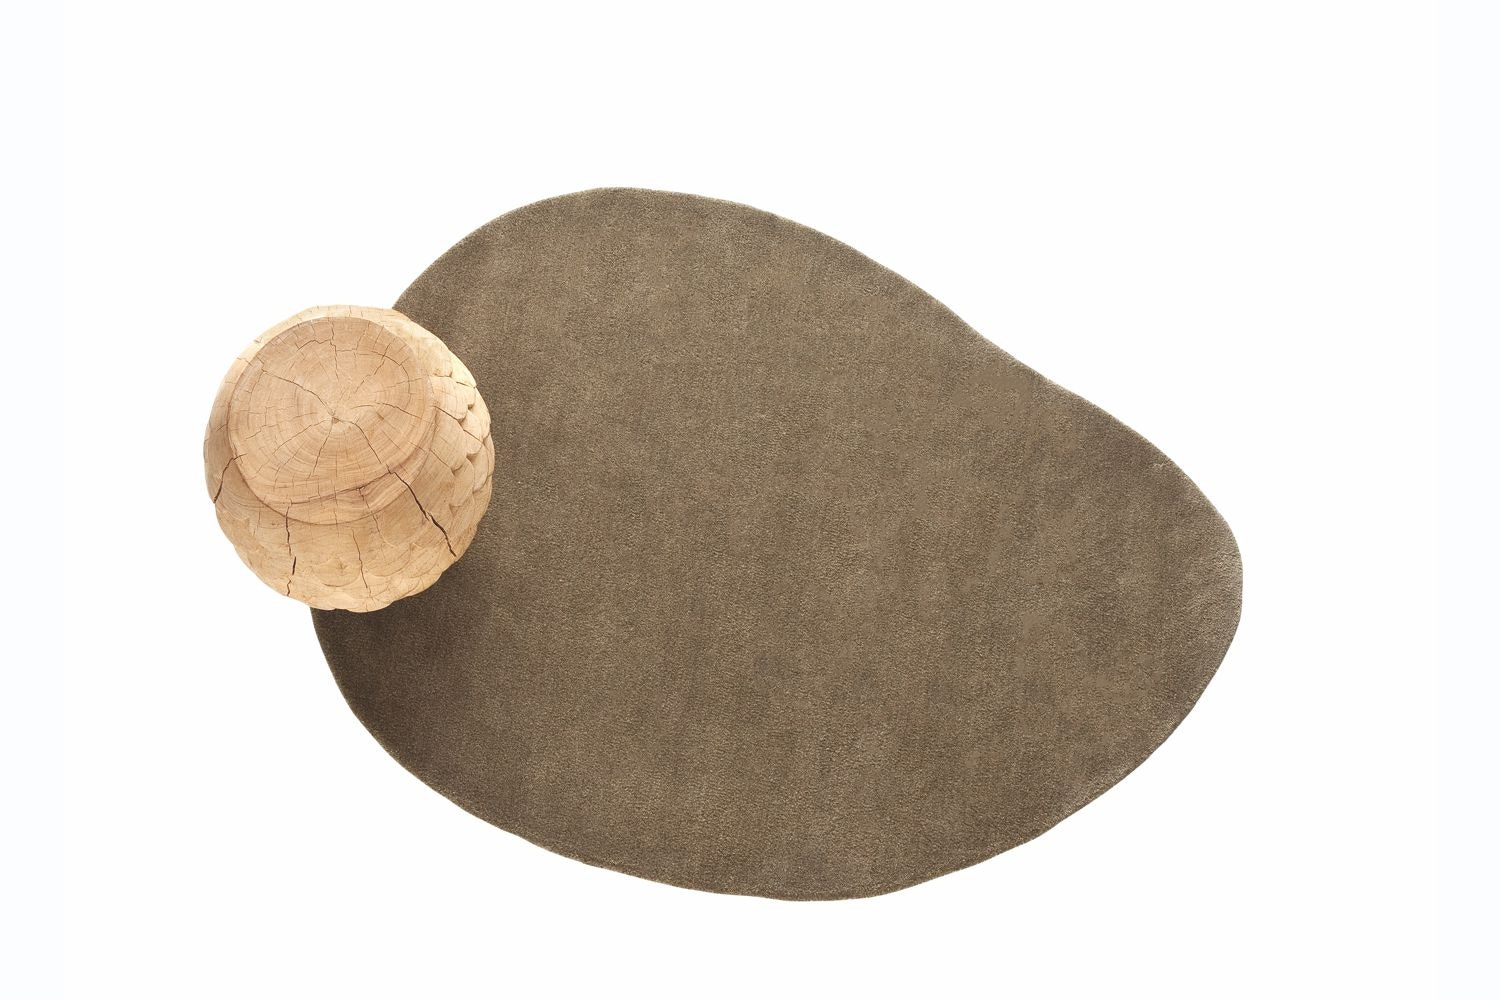 Stone-Wool Stones by Diego Fortunato for Nanimarquina